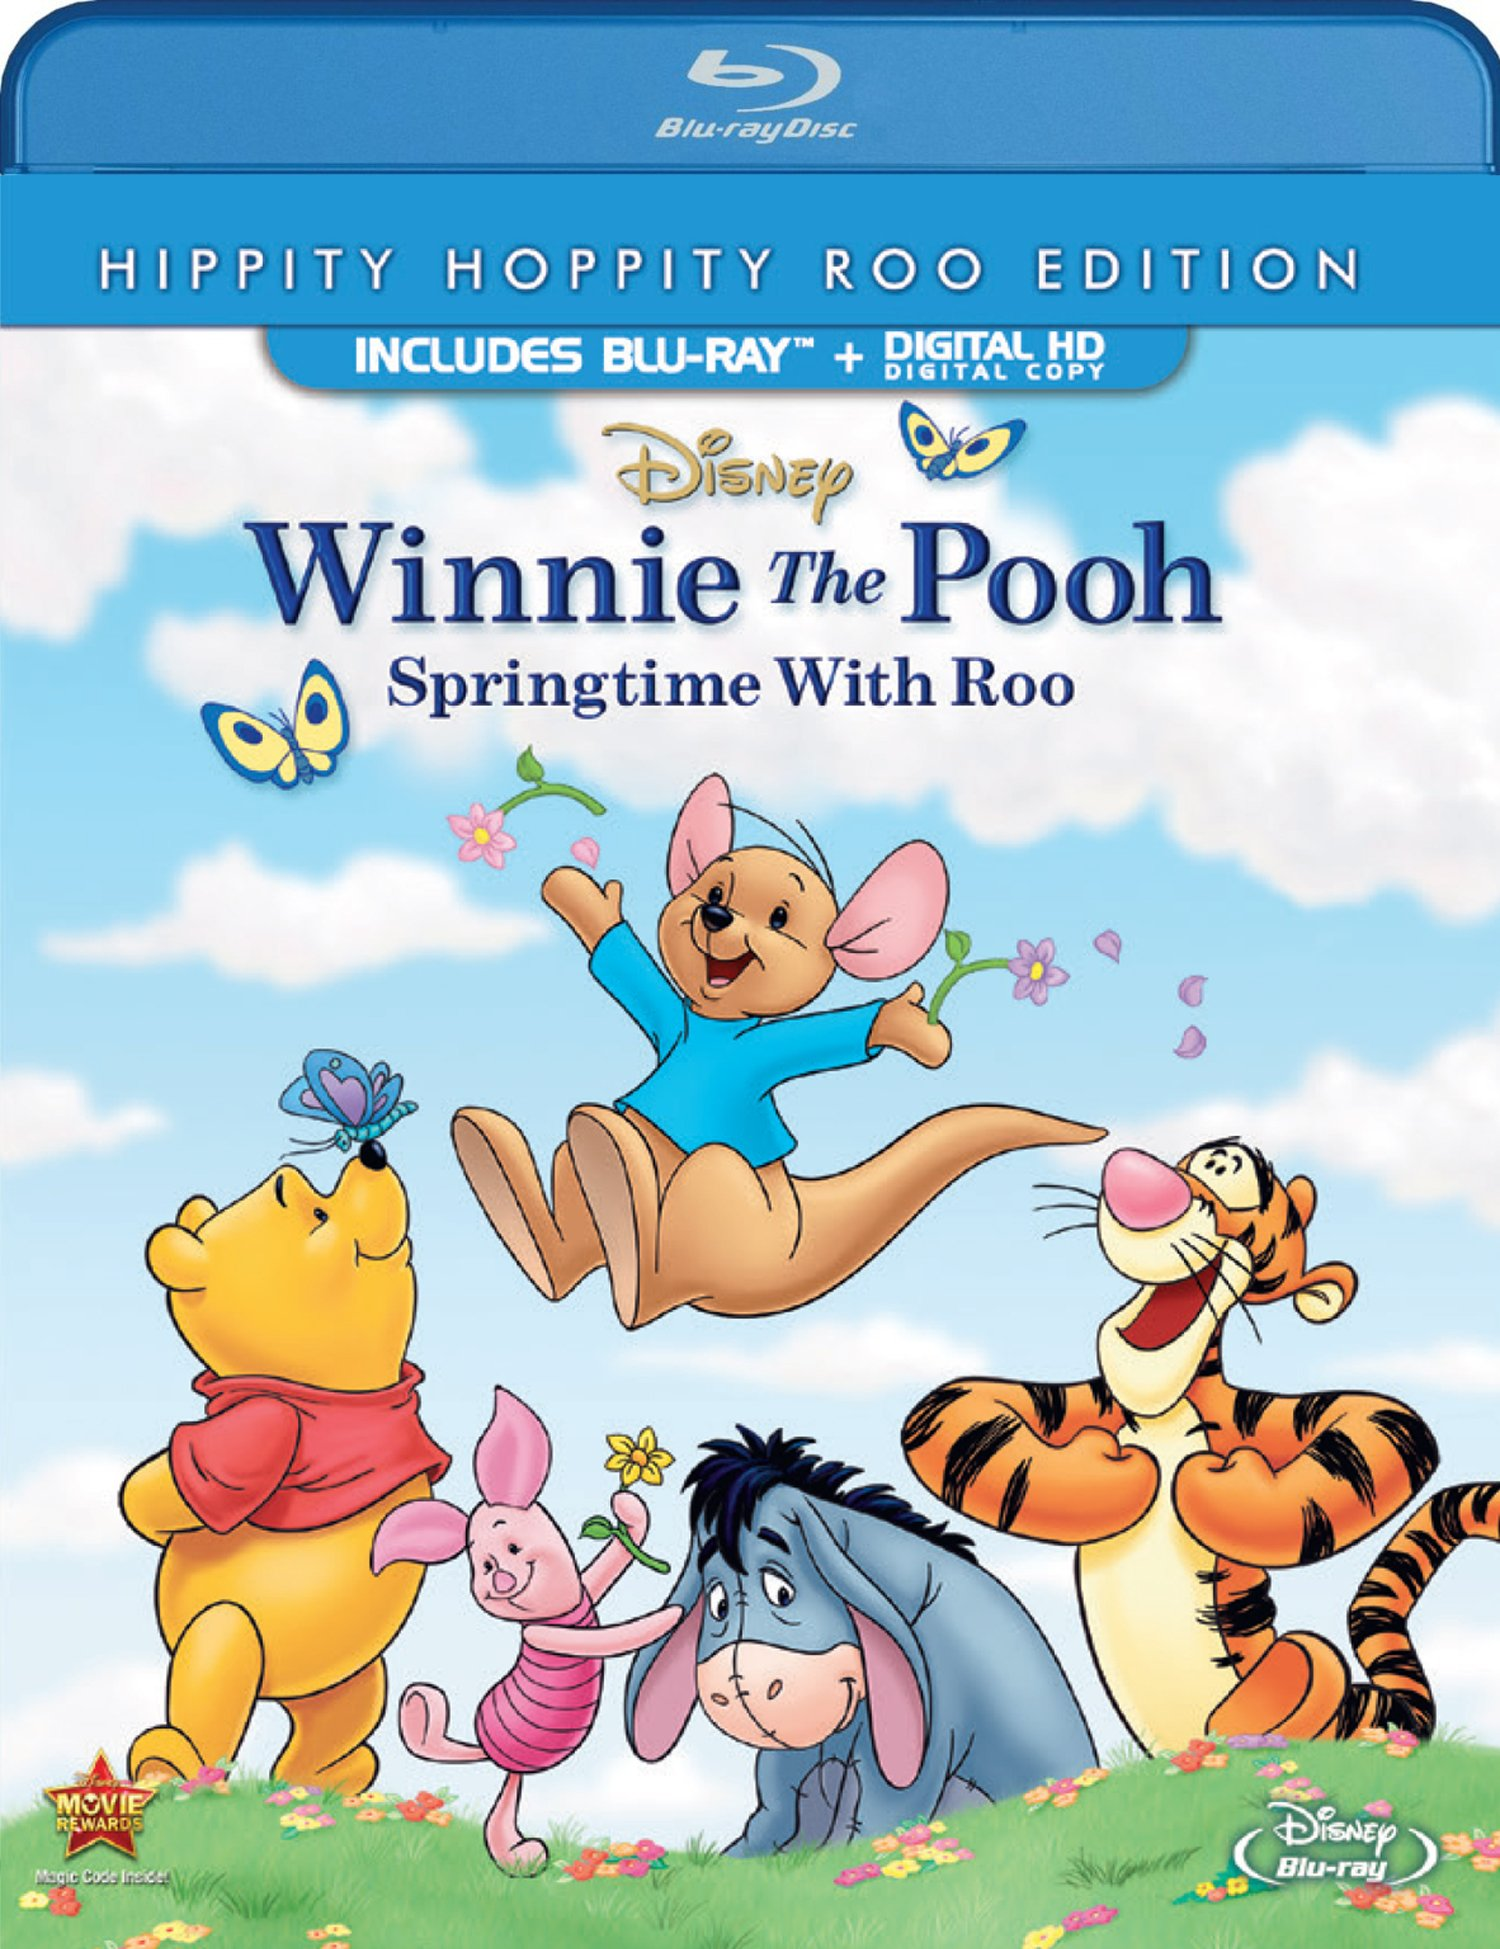 Blu-ray : Winnie the Pooh Springtime with Roo (Special Edition, Dubbed, Digital Theater System, Dolby, Digital Copy)